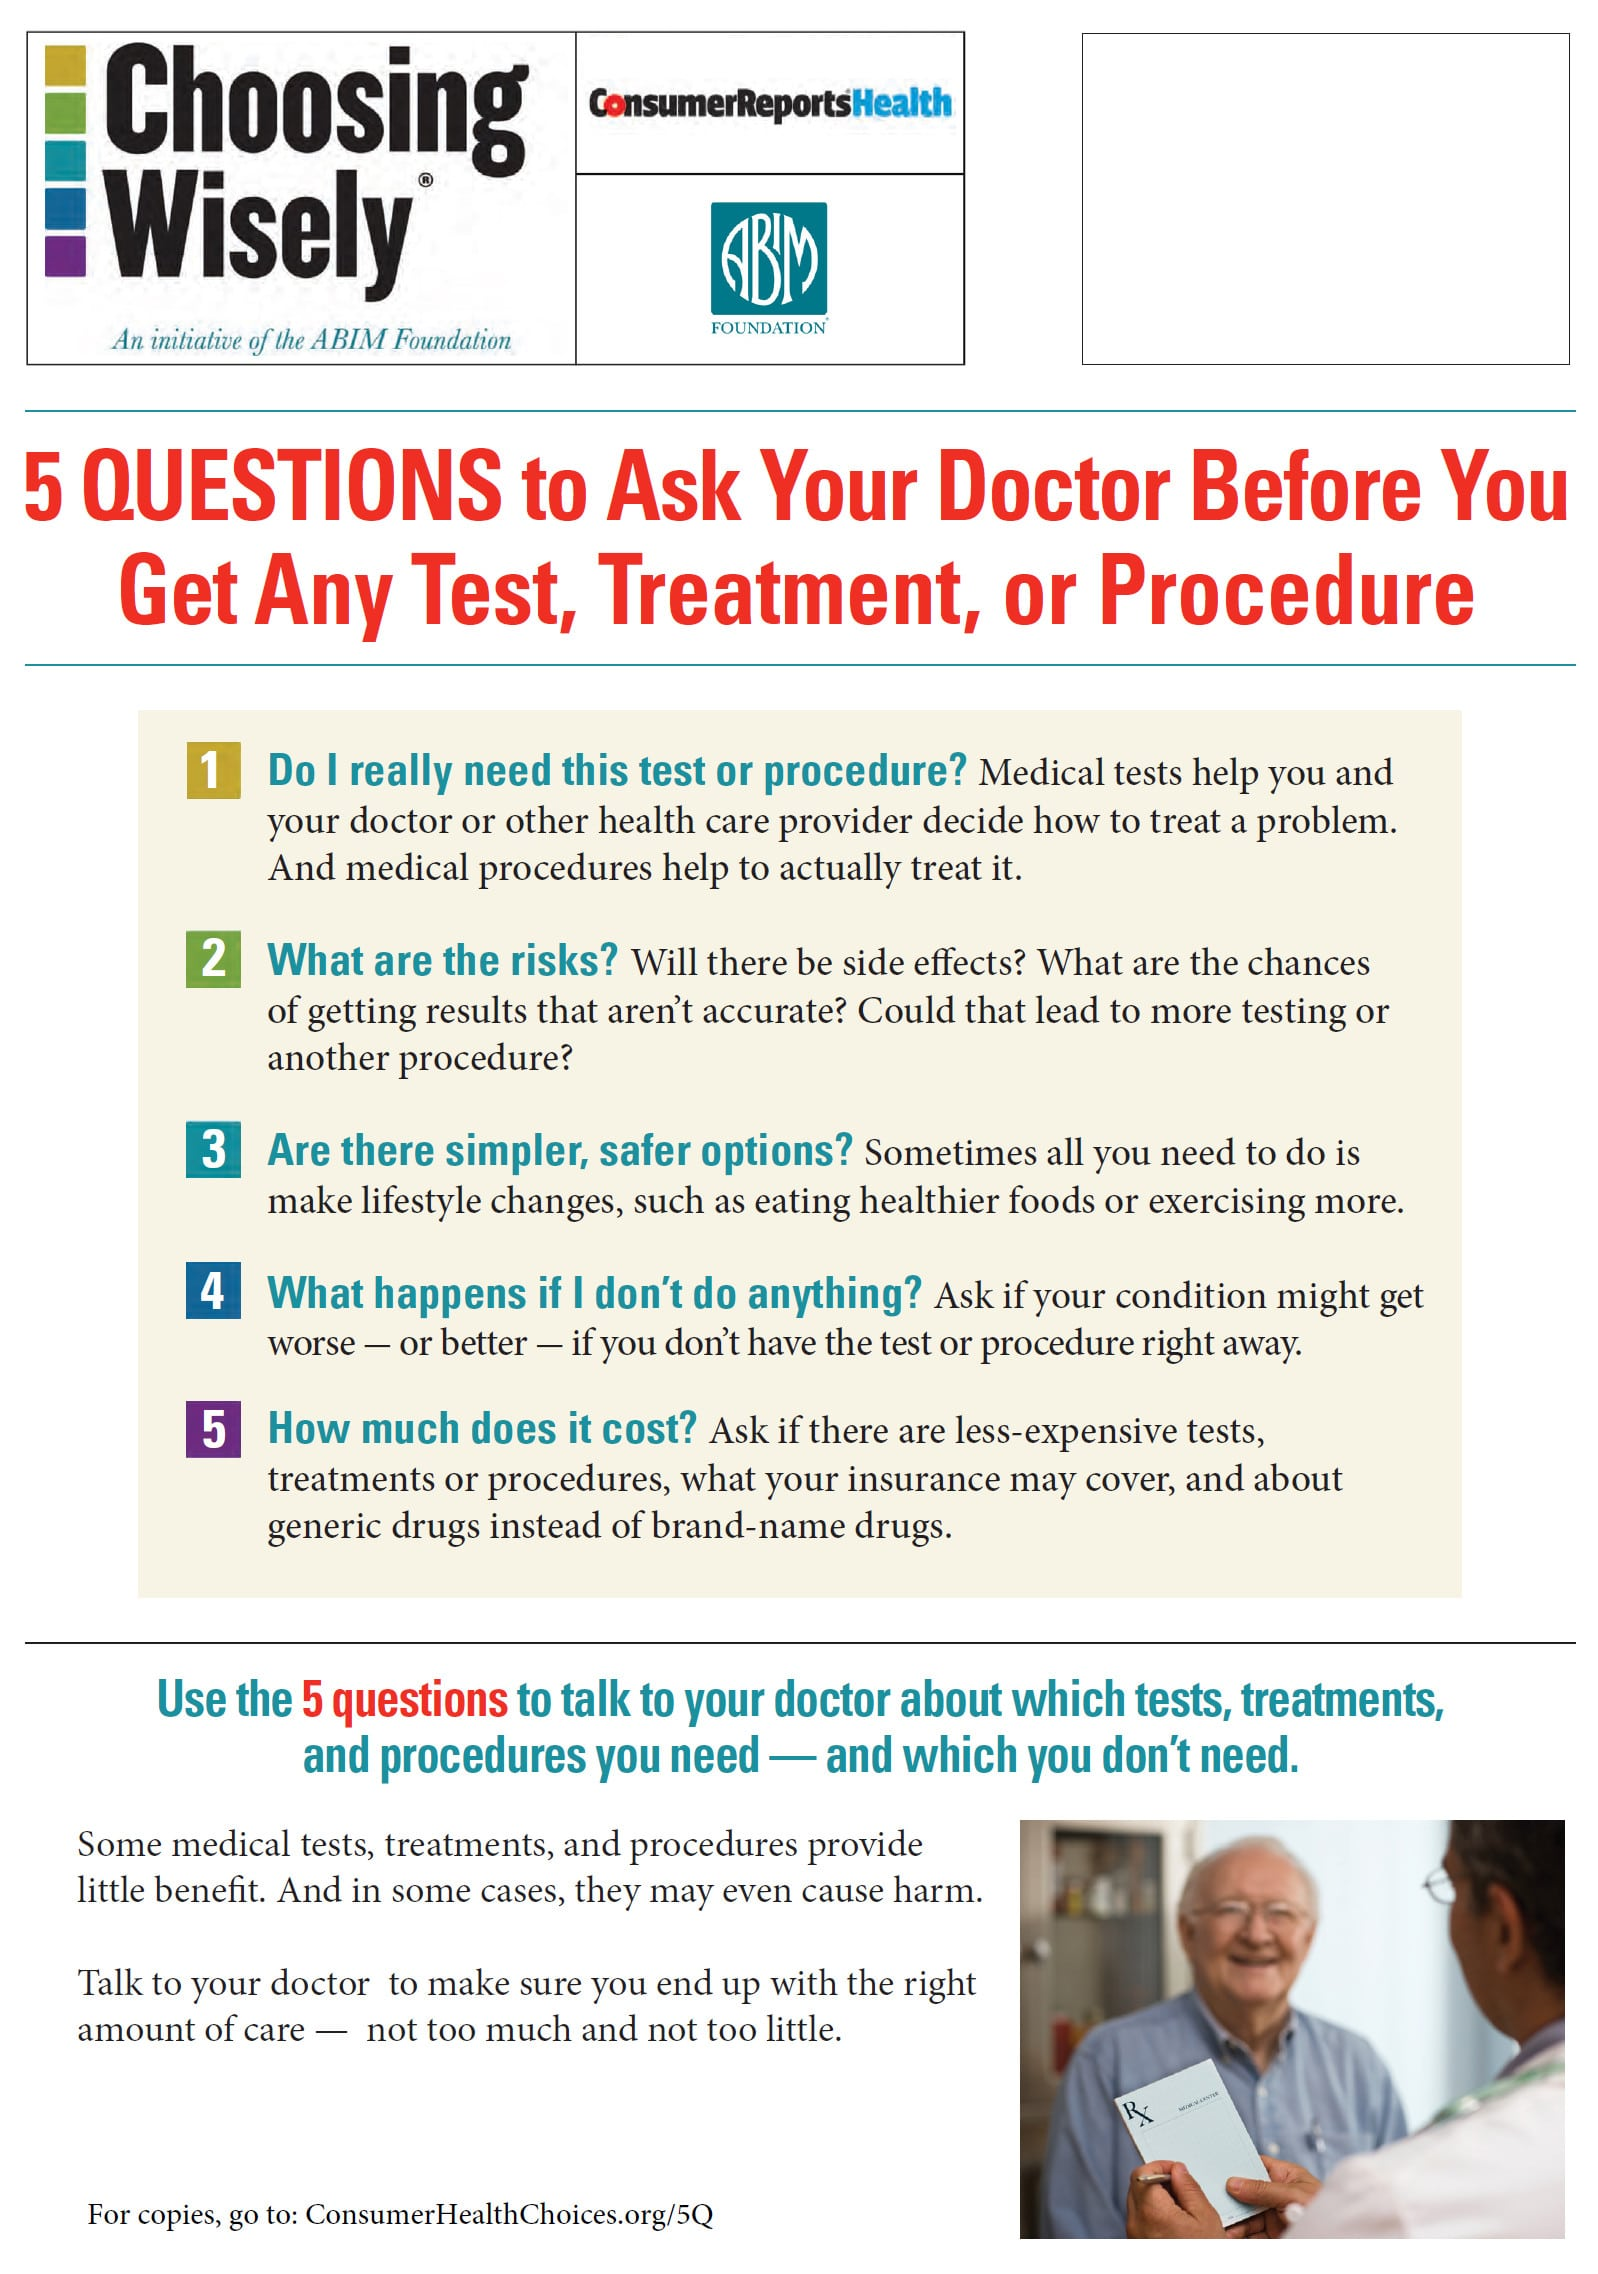 5 Questions To Ask The Doctor About Tests And Treatments